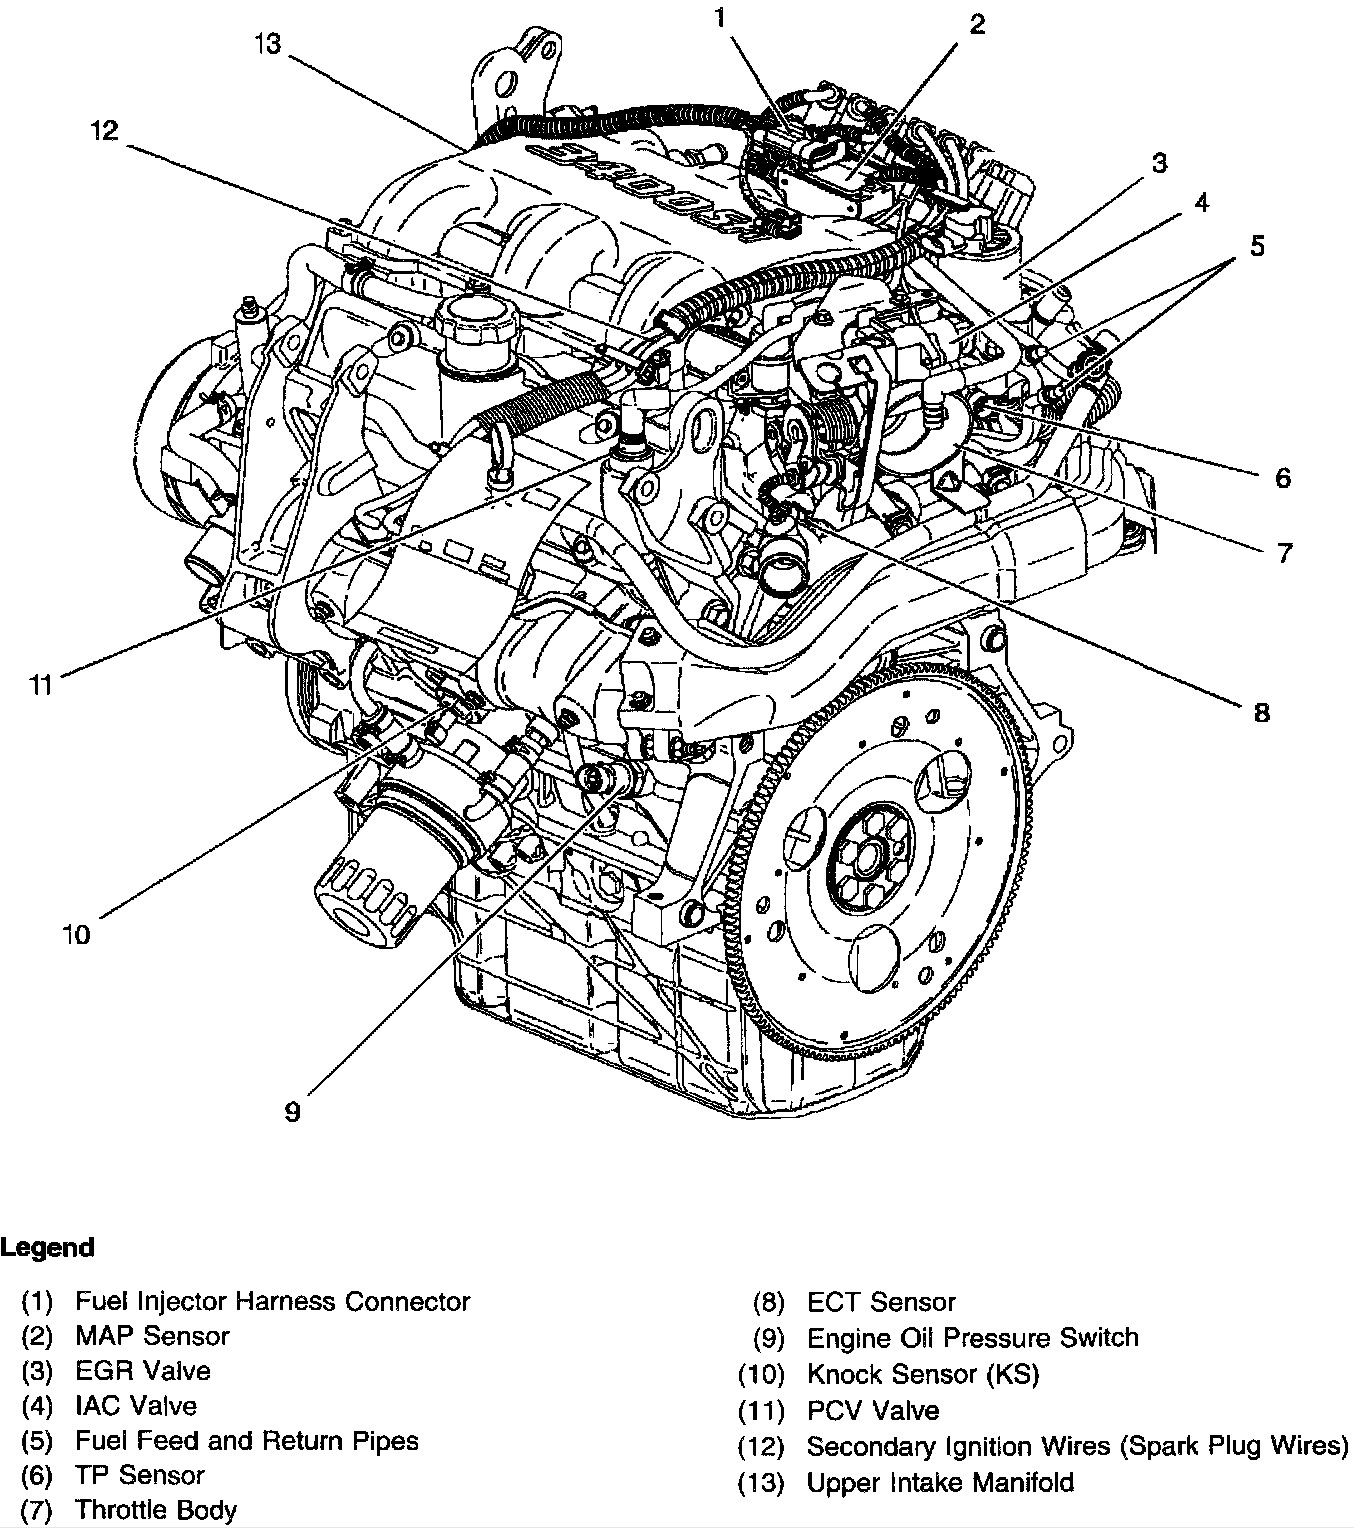 [WRG-7511] 2001 Chevy V6 Engine Diagram